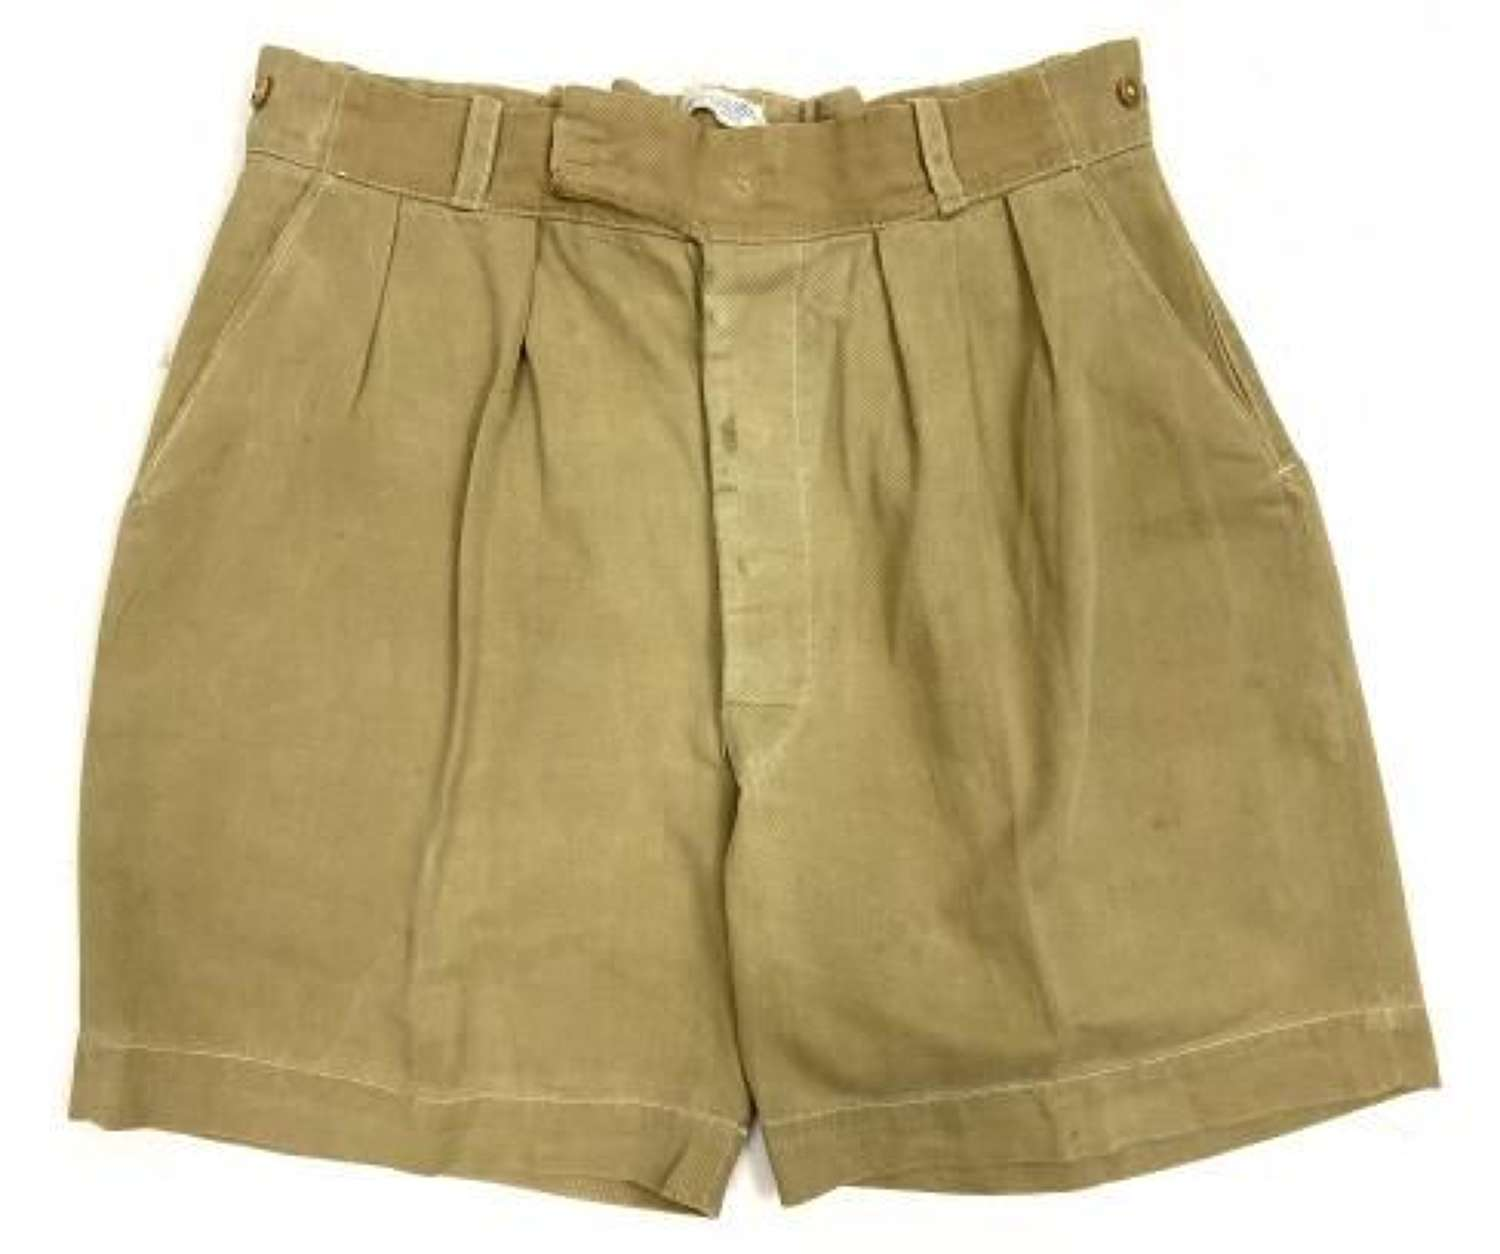 Original 1940s Khaki Drill Shorts by 'Gamages'